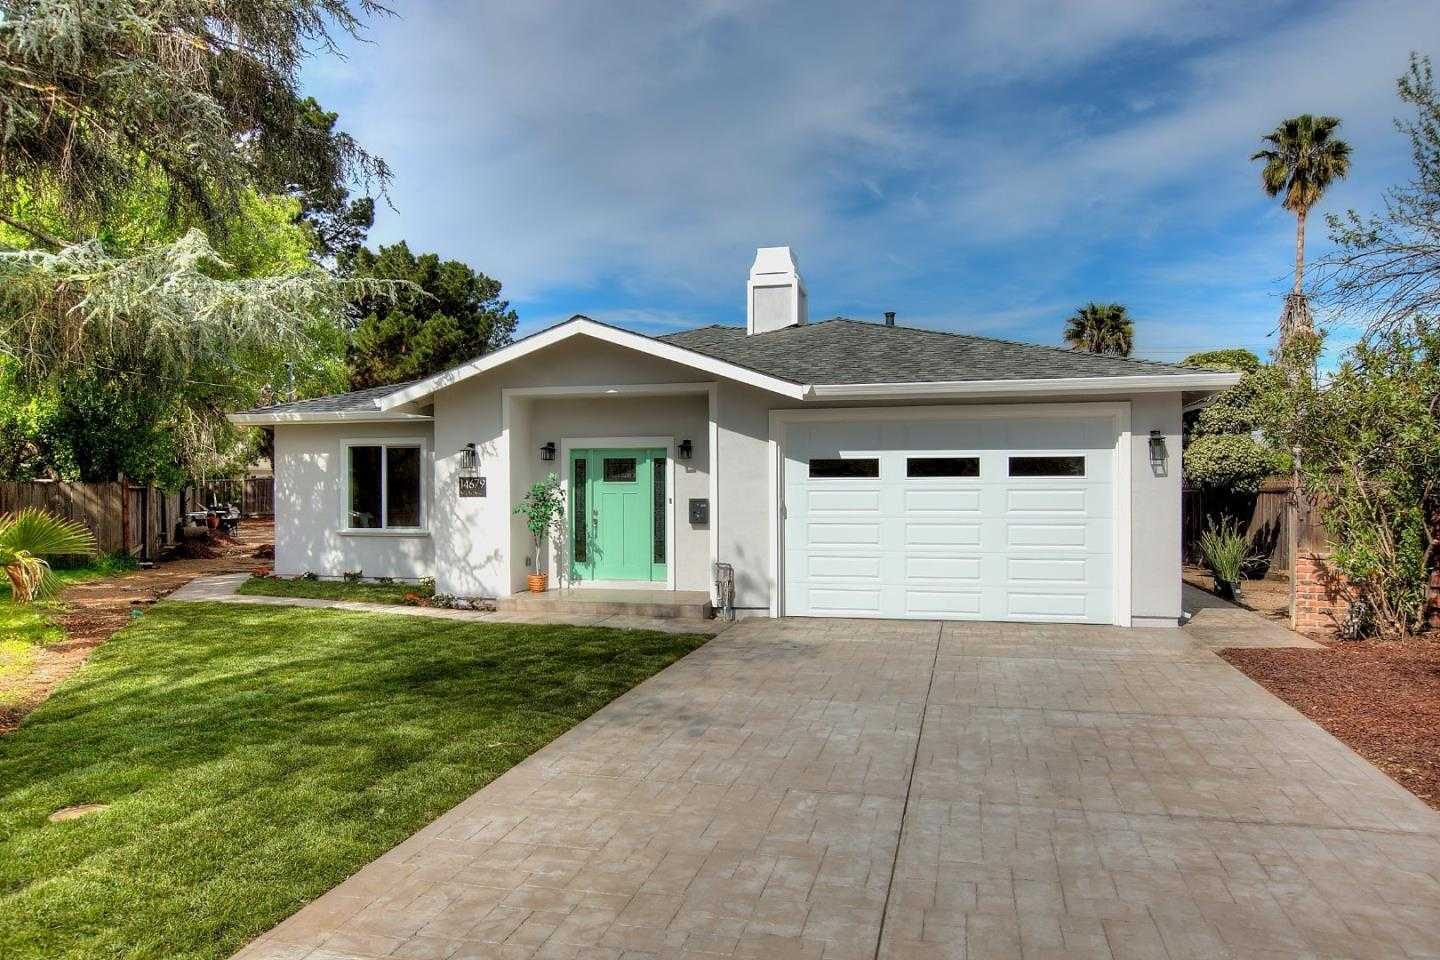 $1,880,000 - 5Br/3Ba -  for Sale in San Jose